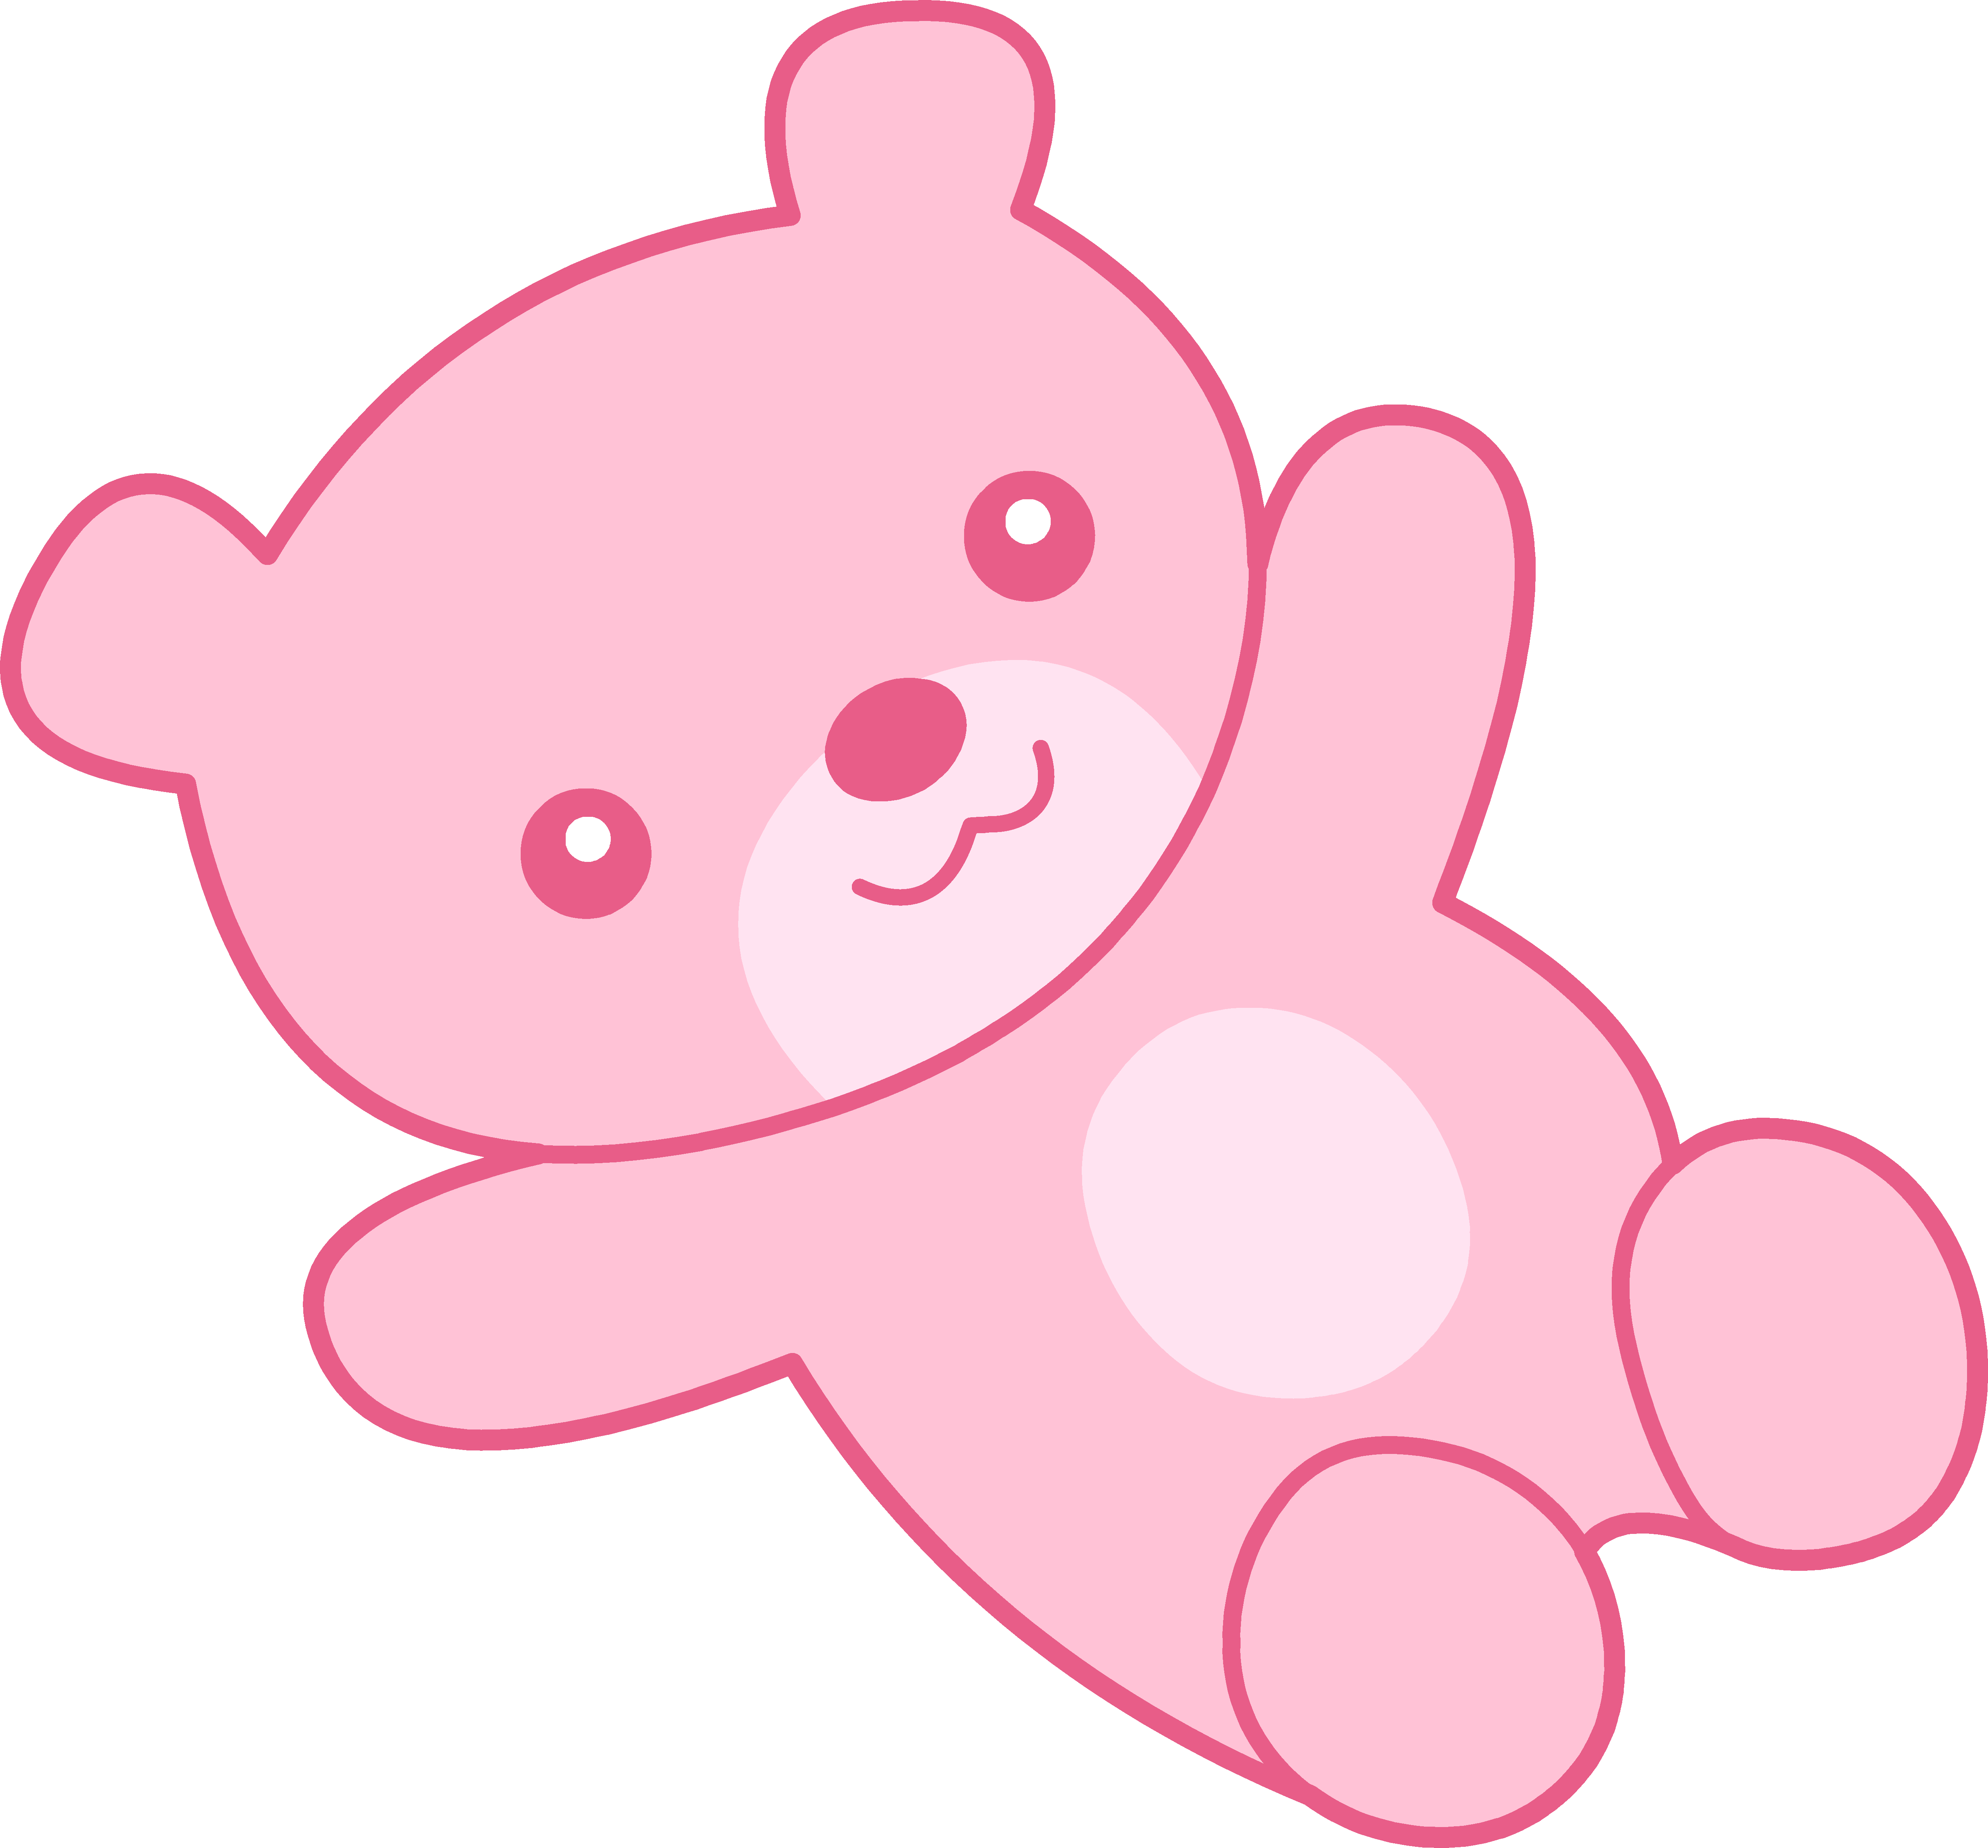 Pink teddy clipart image black and white library Cute Pink Teddy Bear Clipart - Free Clip Art image black and white library